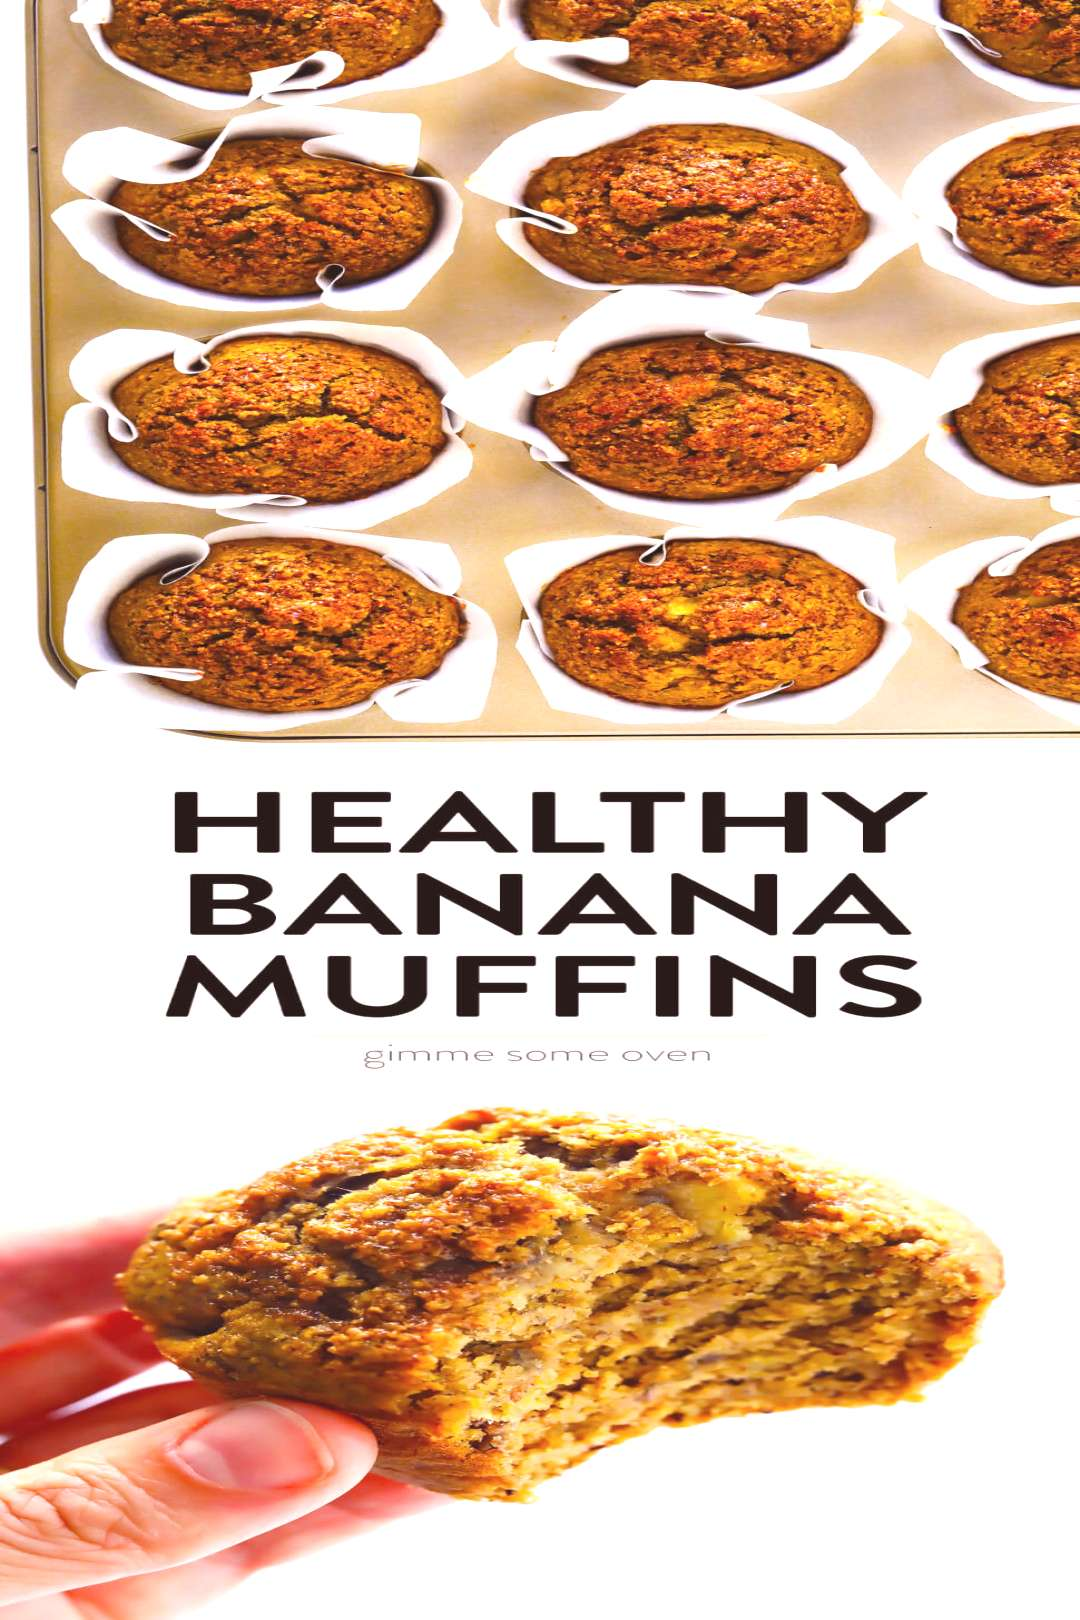 These healthy banana muffins are easy to make, naturally gluten-free, lightly sweetened with maple